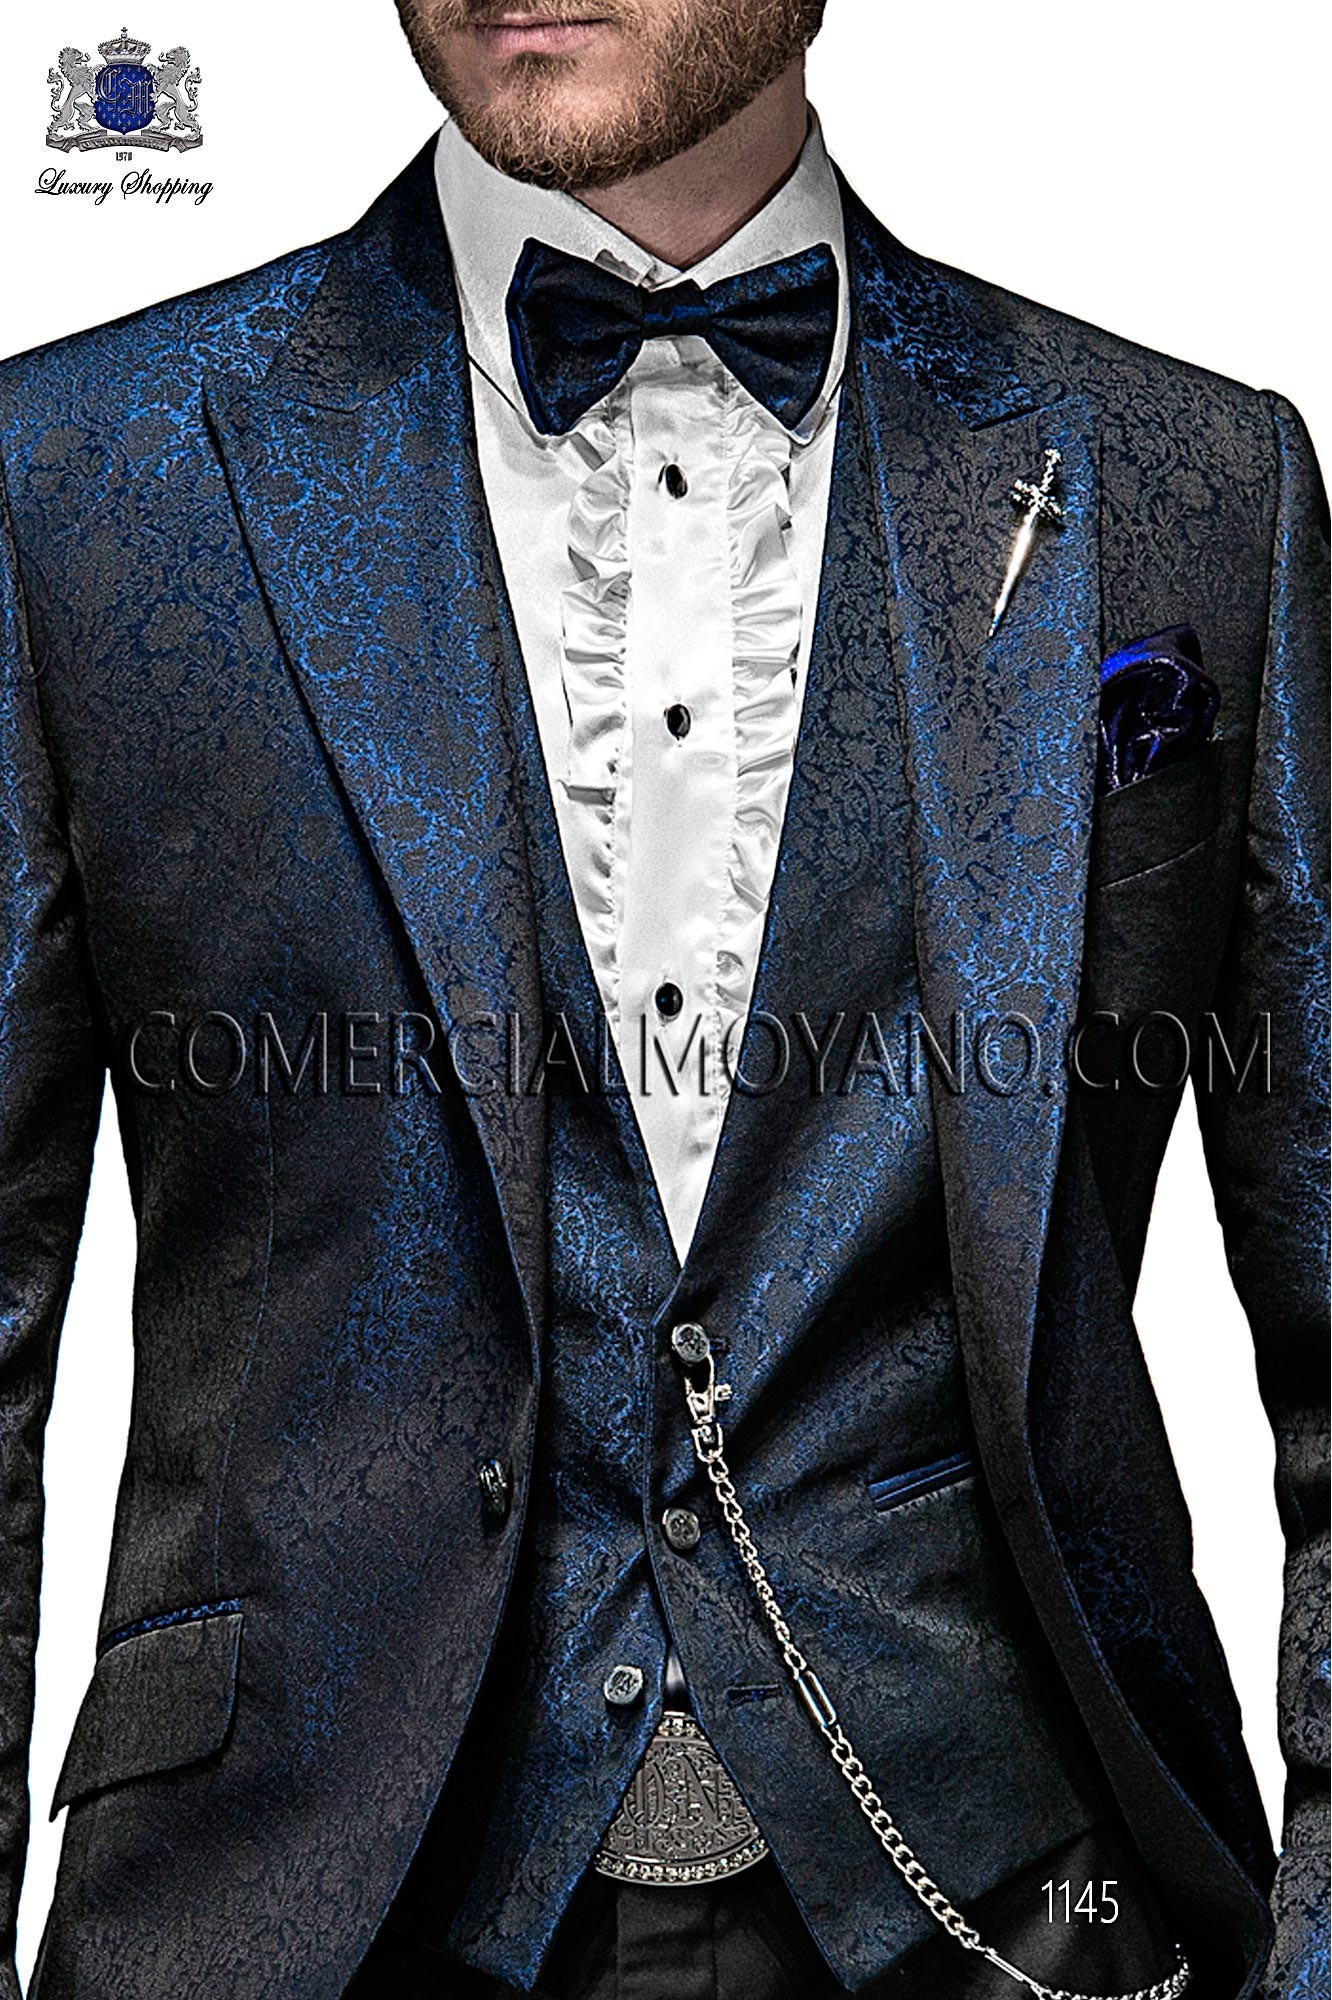 Italian emotion blue/black men wedding suit, model: 1145 Ottavio Nuccio Gala Emotion Collection